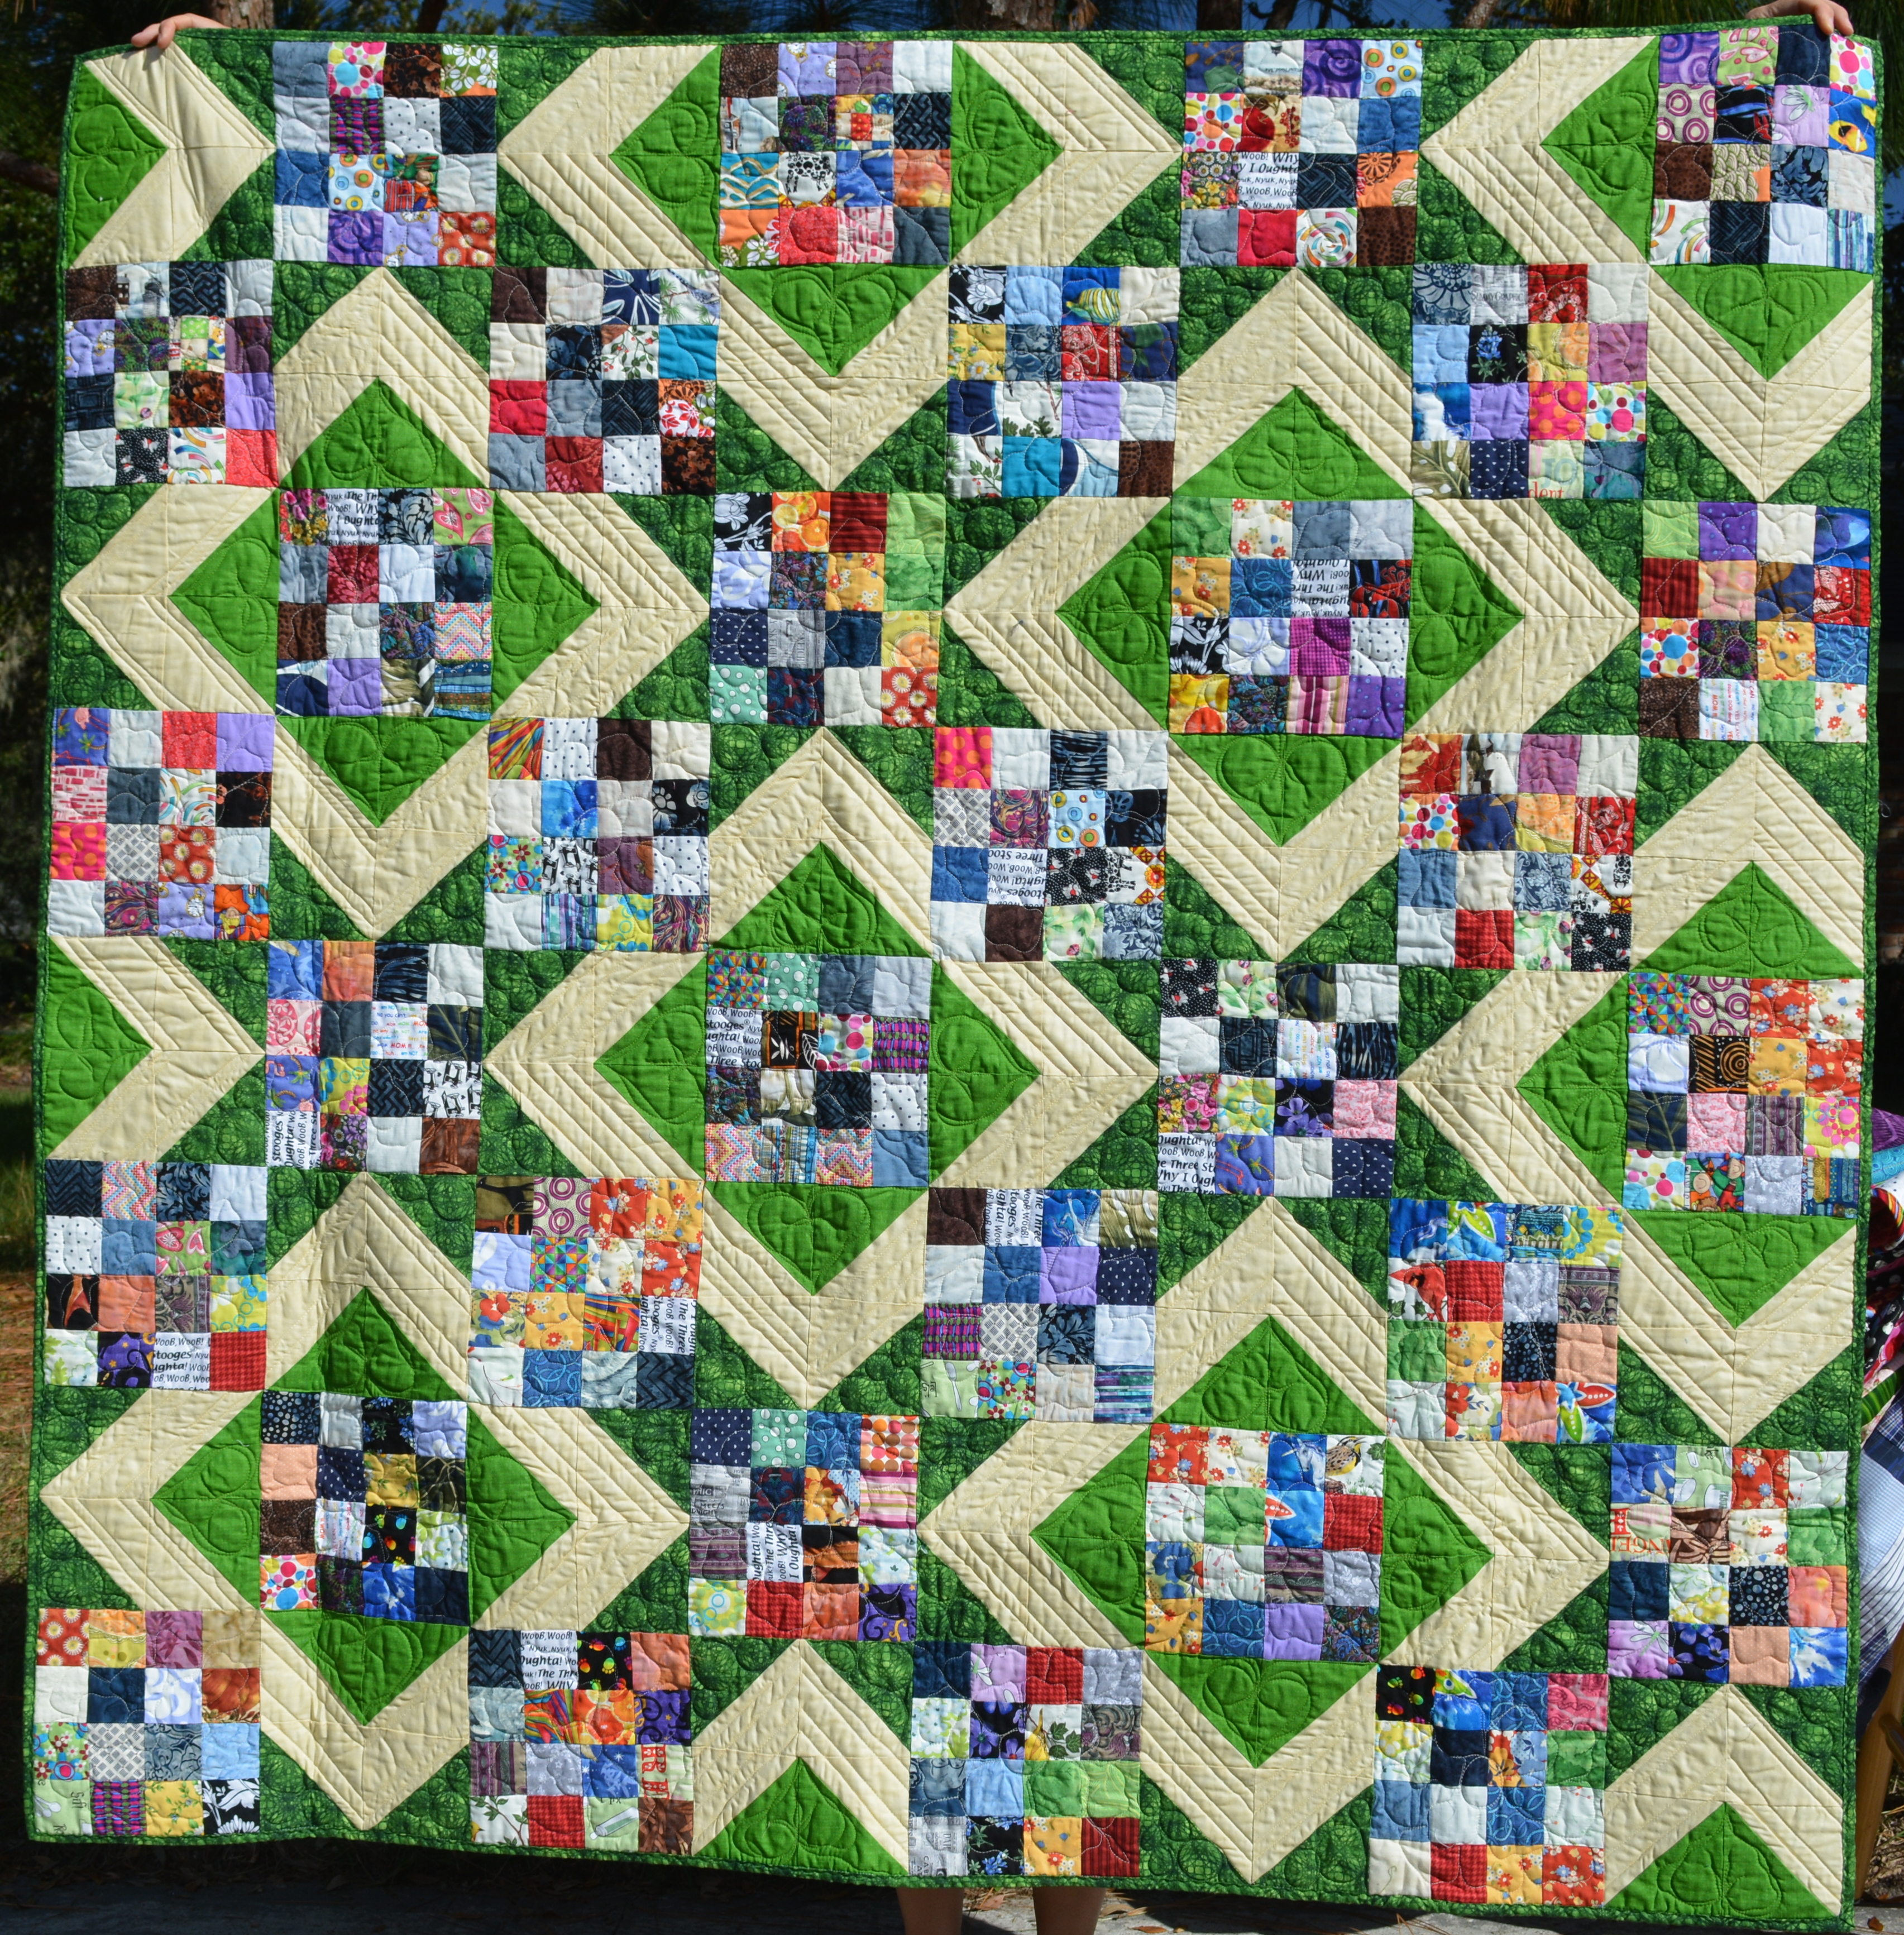 The Florida Quilt Network